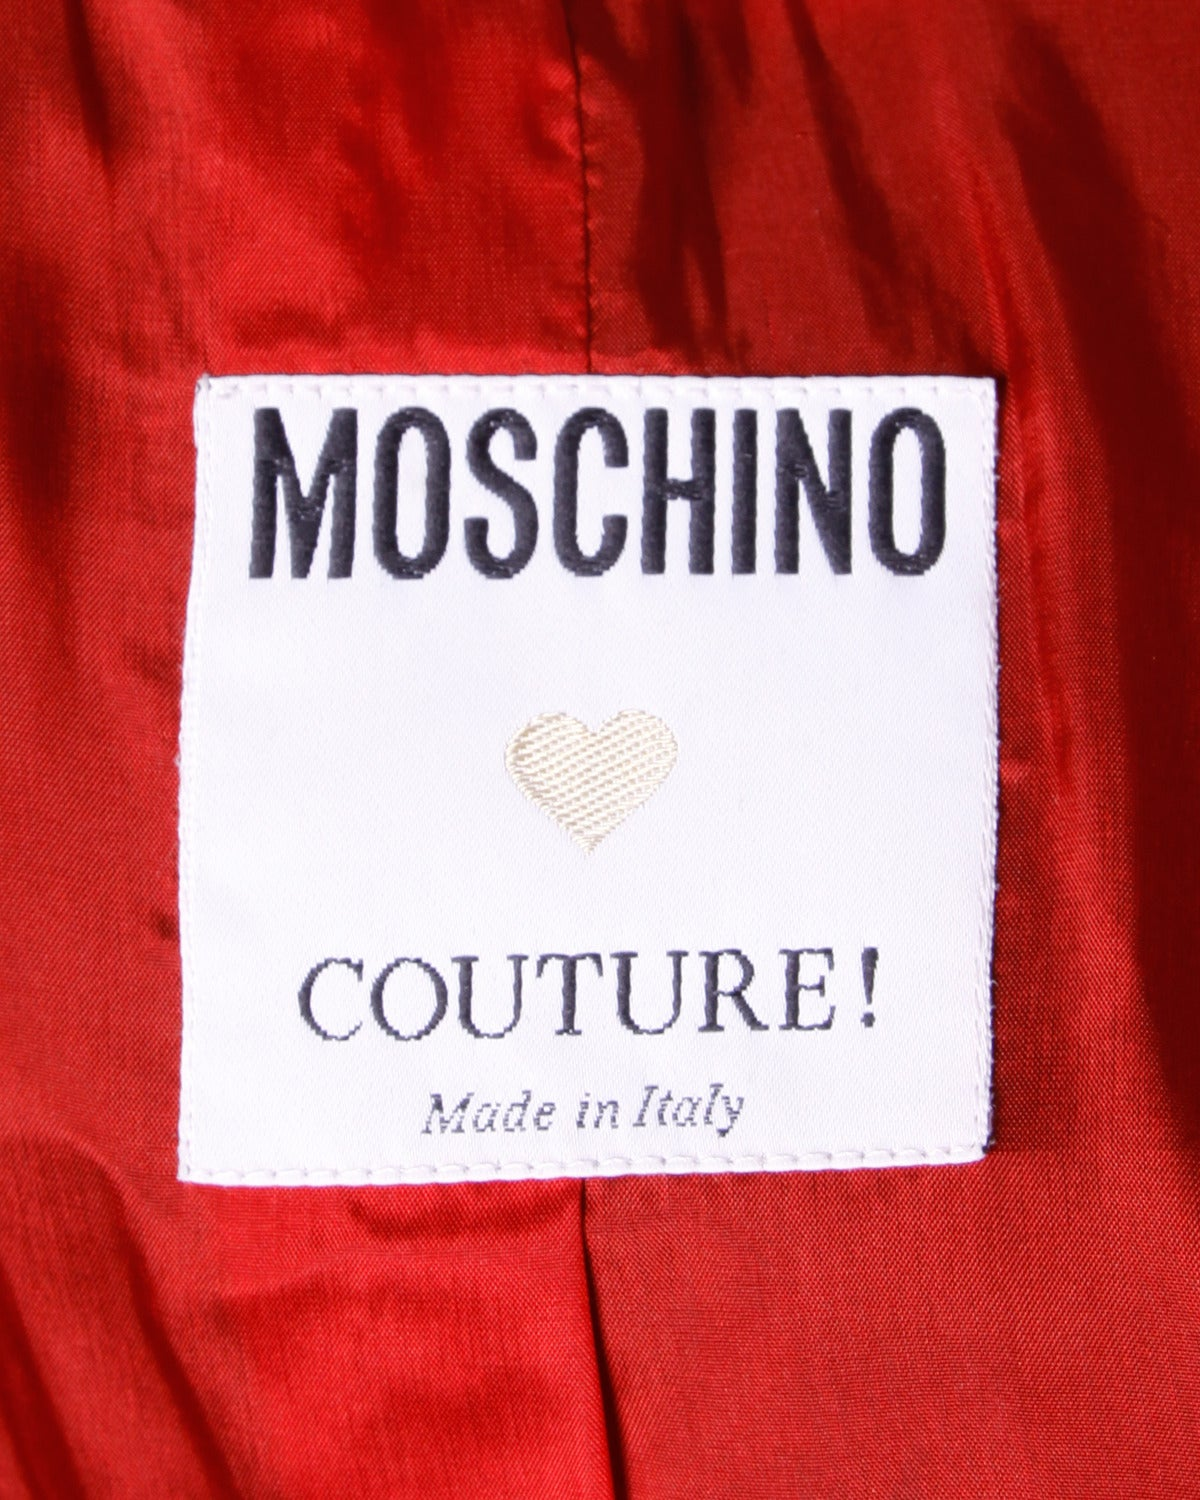 Moschino Couture! Vintage 1990s 90s Color Block Dart Board Blazer Jacket 8